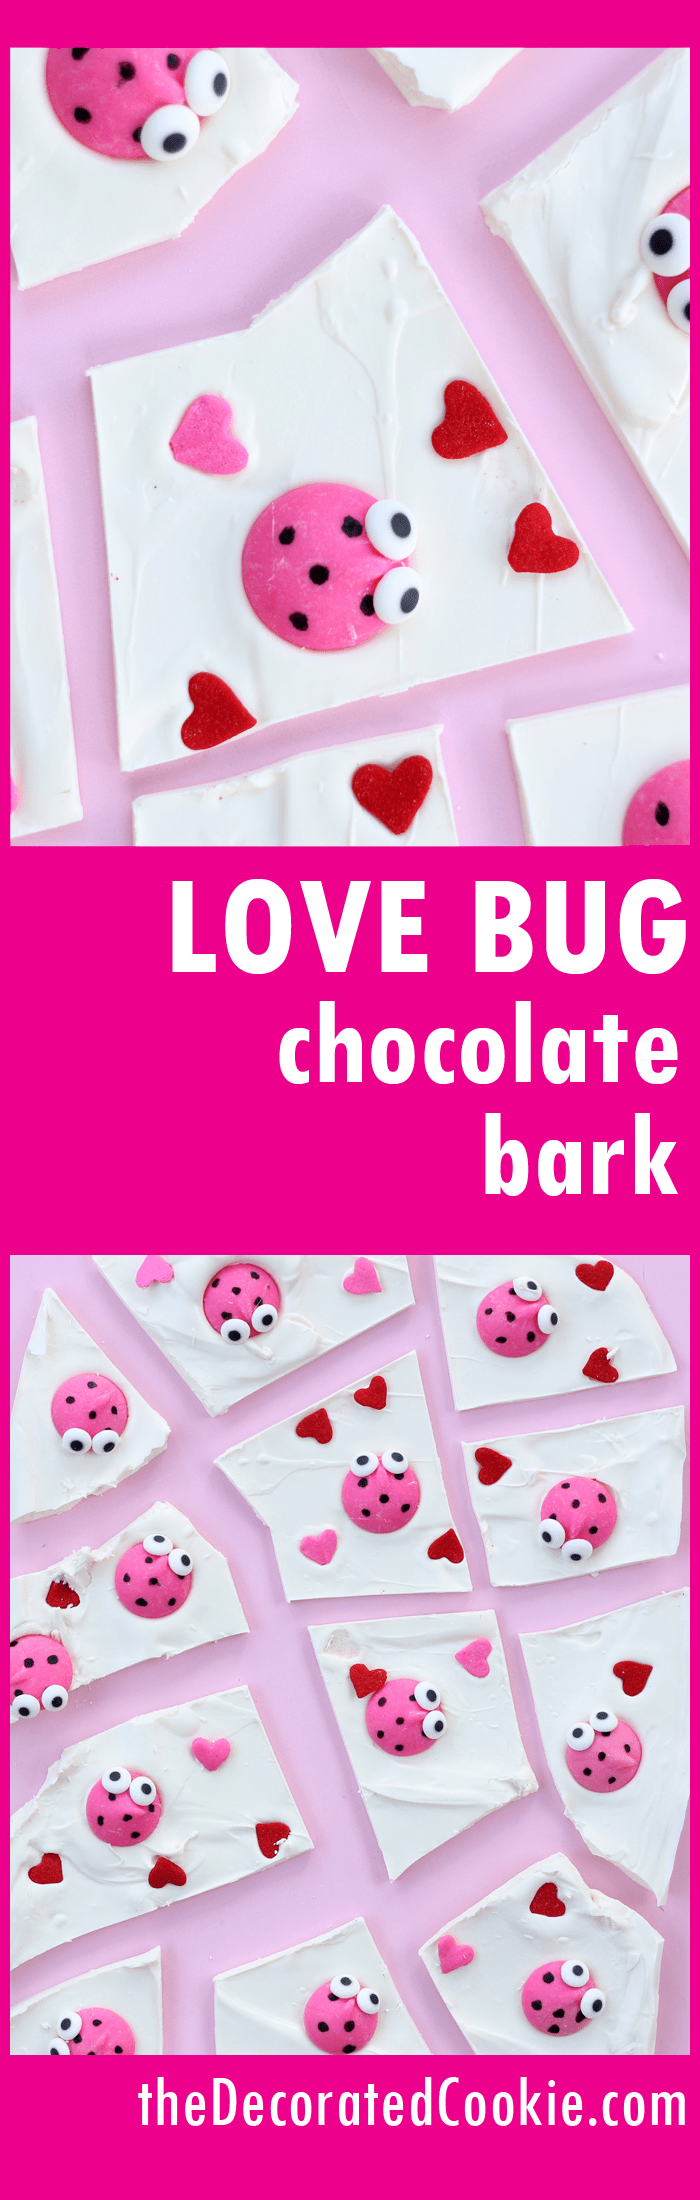 love bug chocolate bark for an easy Valentine's Day treat